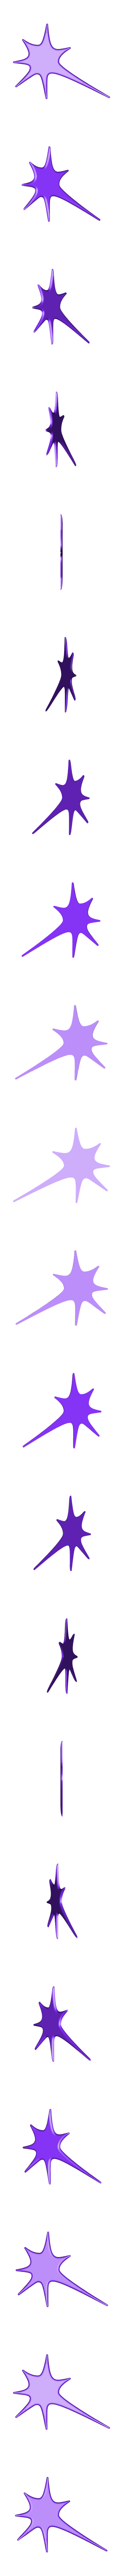 Space Decals_ Star A.stl Download free STL file Space Decals • 3D printing template, Hom3d